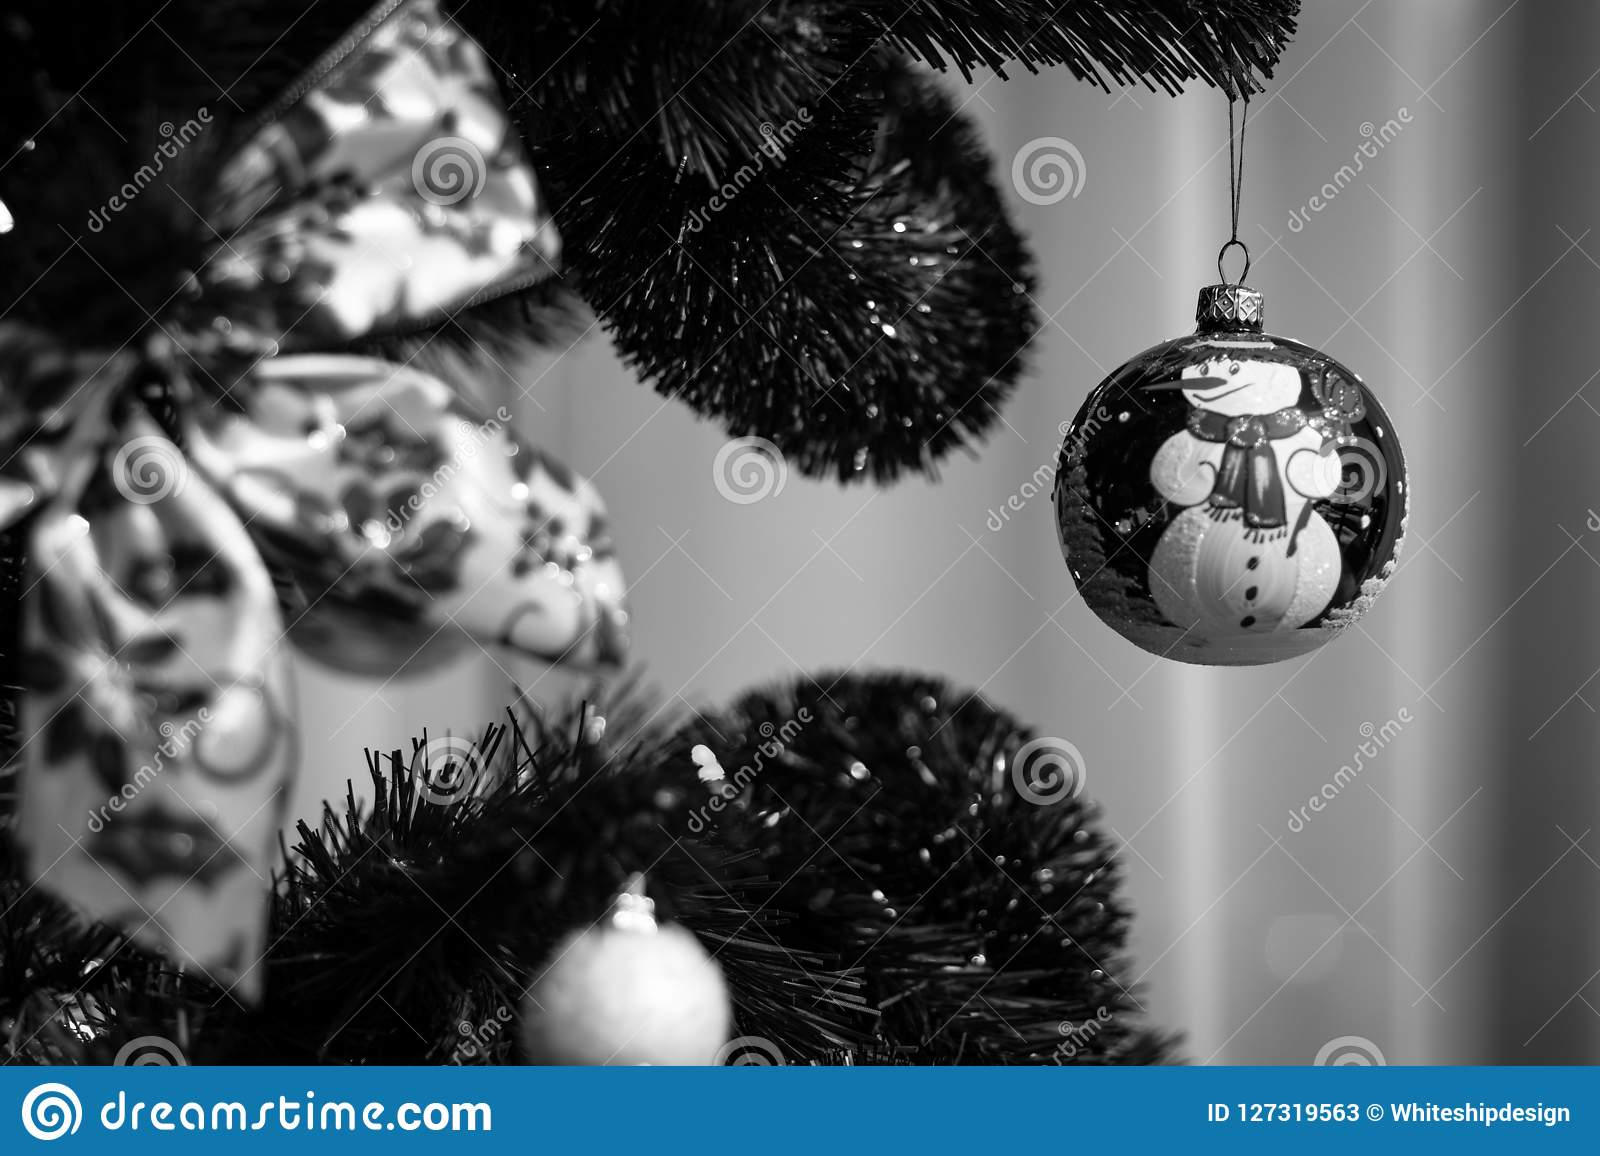 Black And White Christmas Tree Decoration Ball Stock Image Image Of Bauble Isolated 127319563